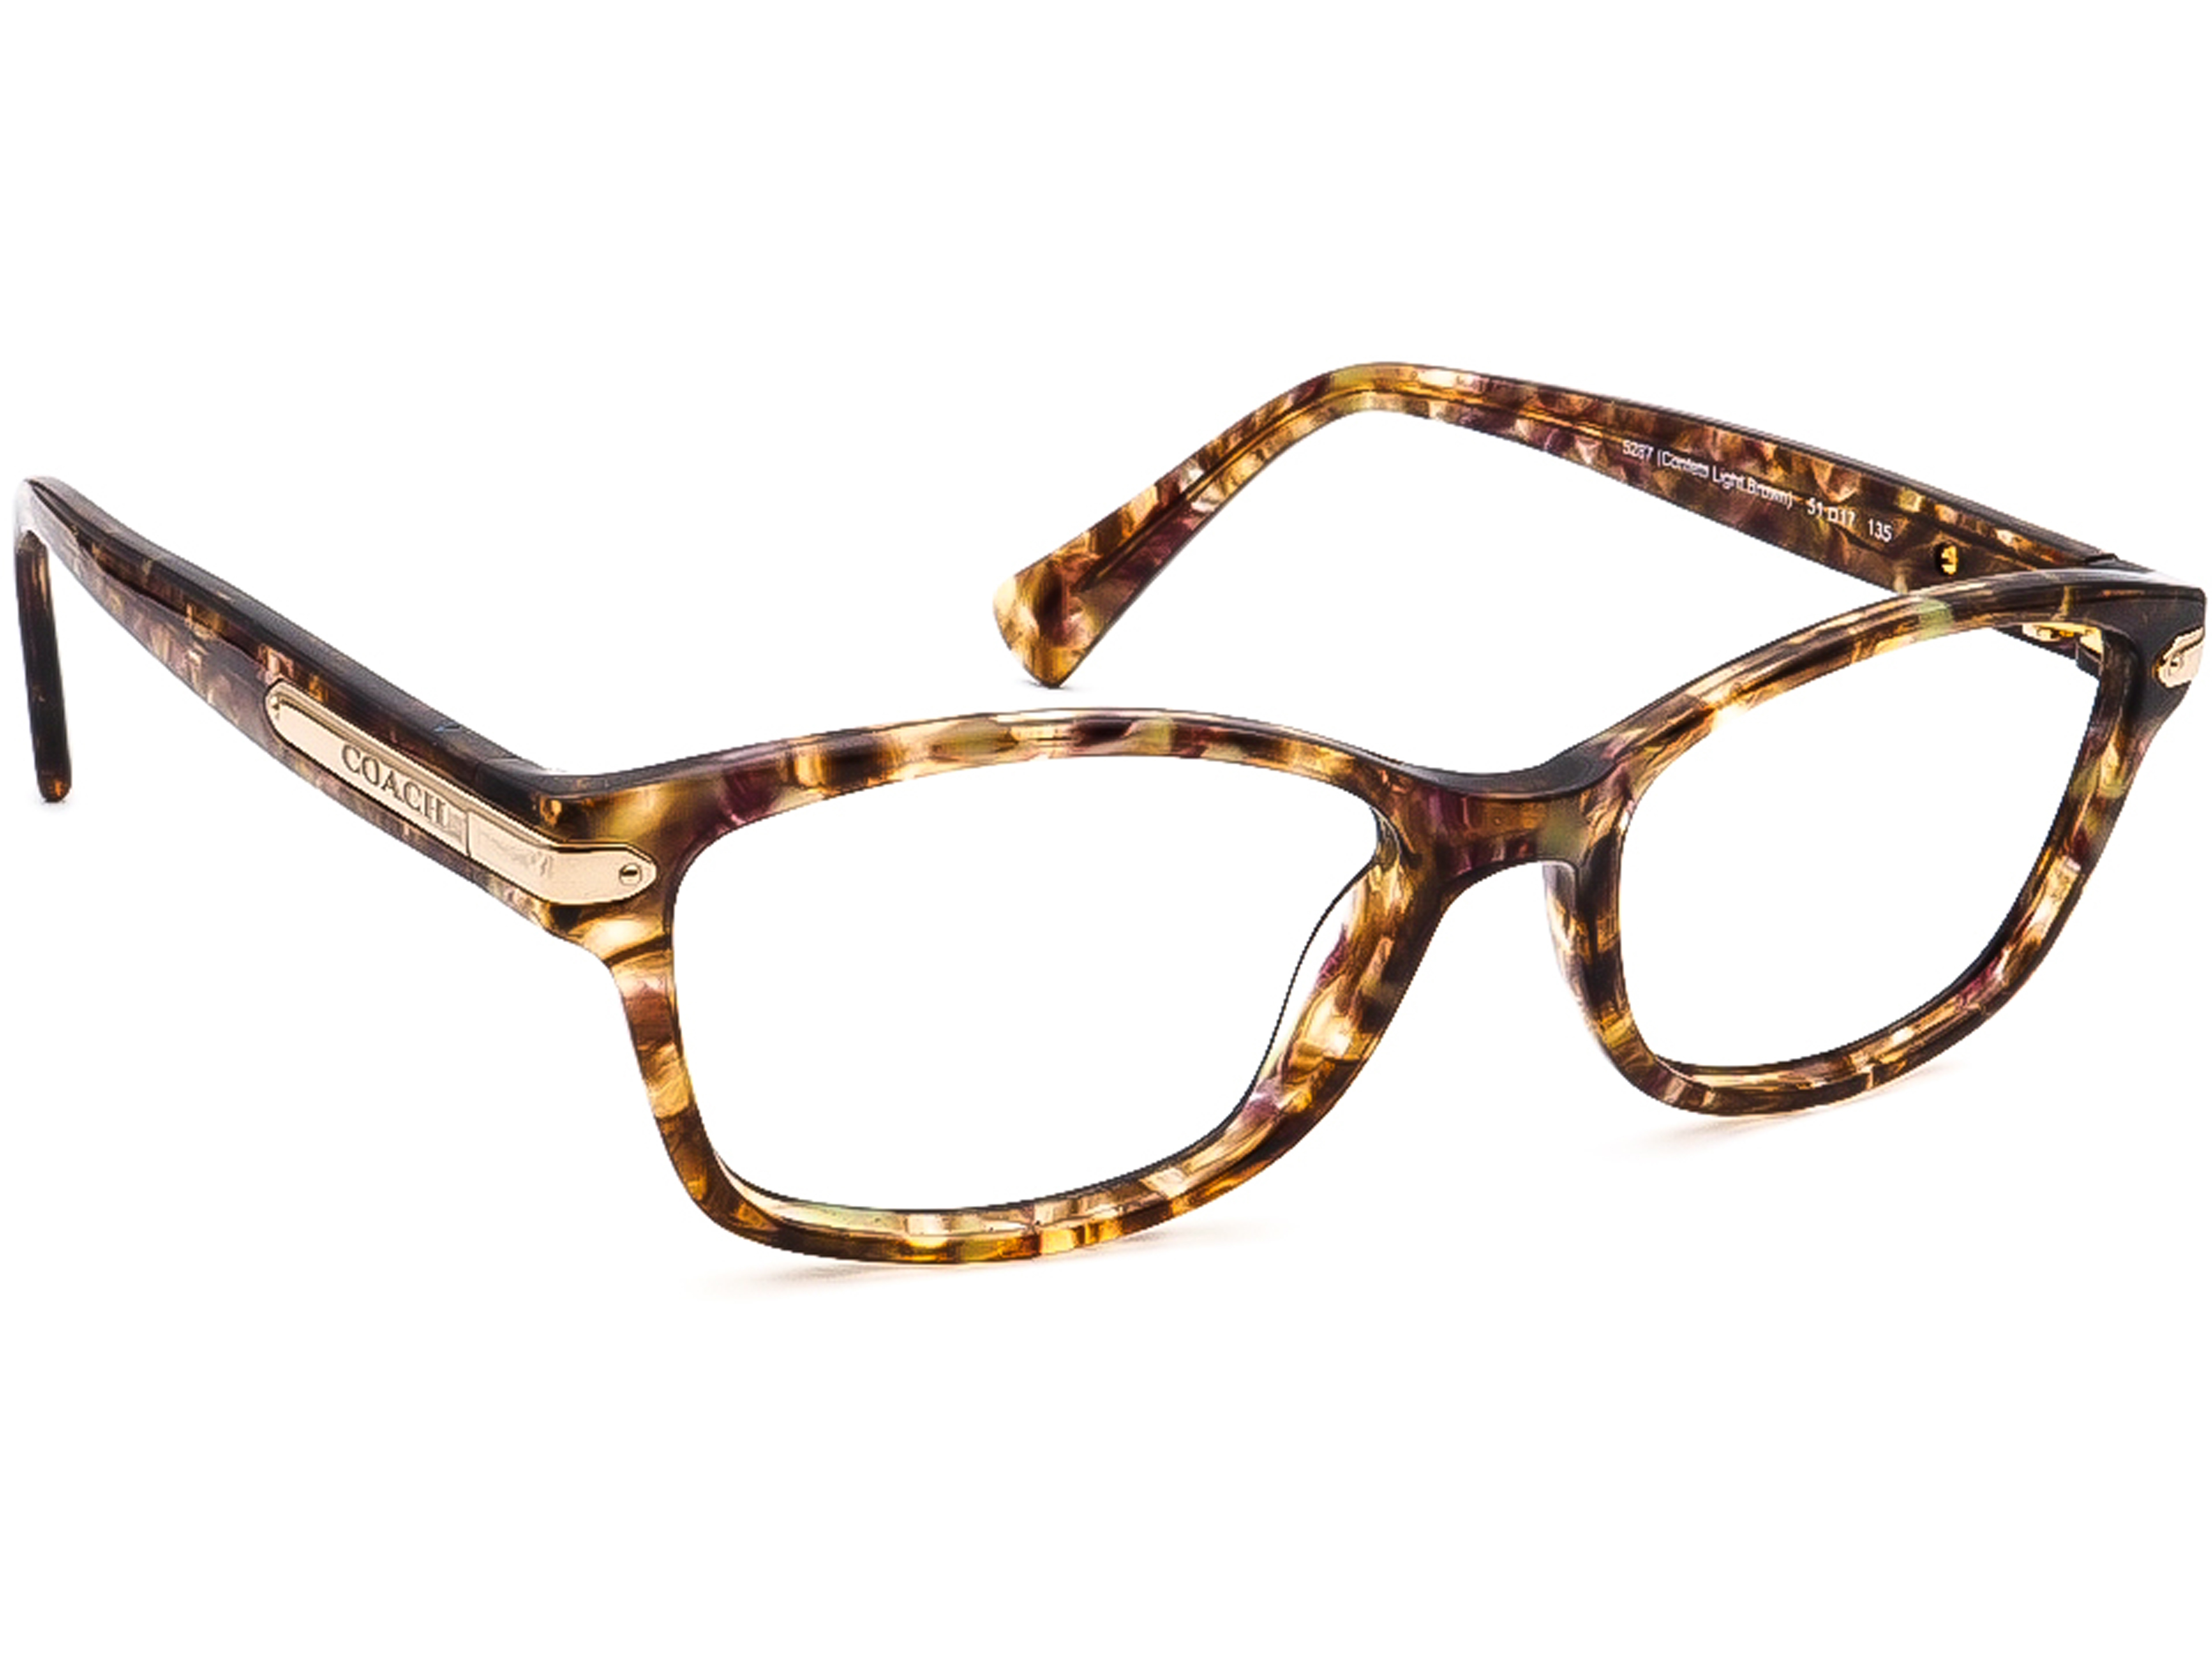 Coach HC 6065 Z 5287 Confetti Light Brown Eyeglasses